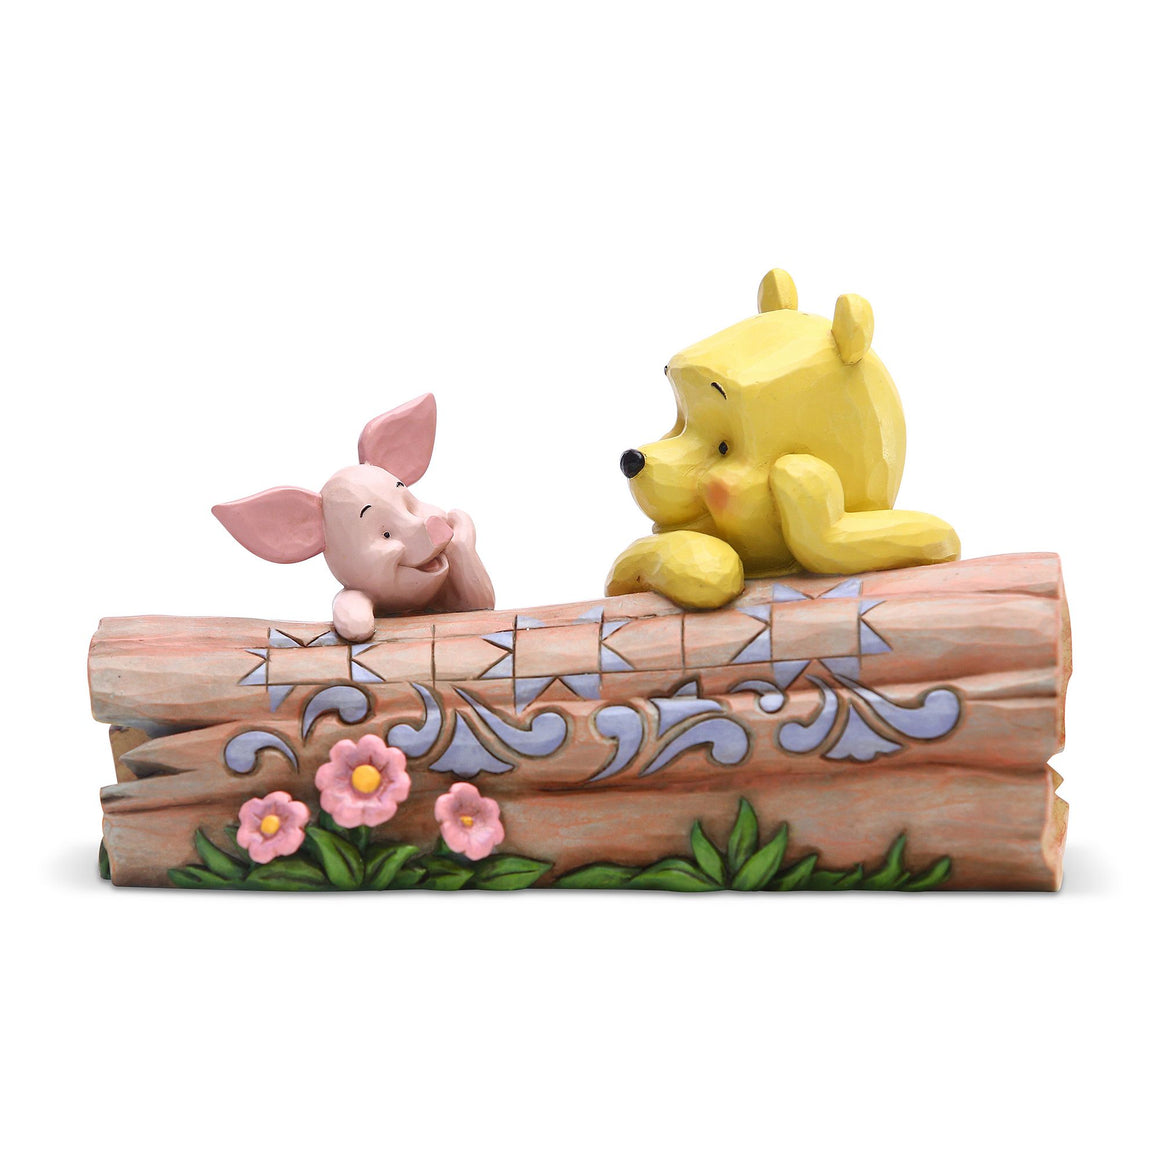 Disney Traditions Pooh and Piglet on a Log Figurine